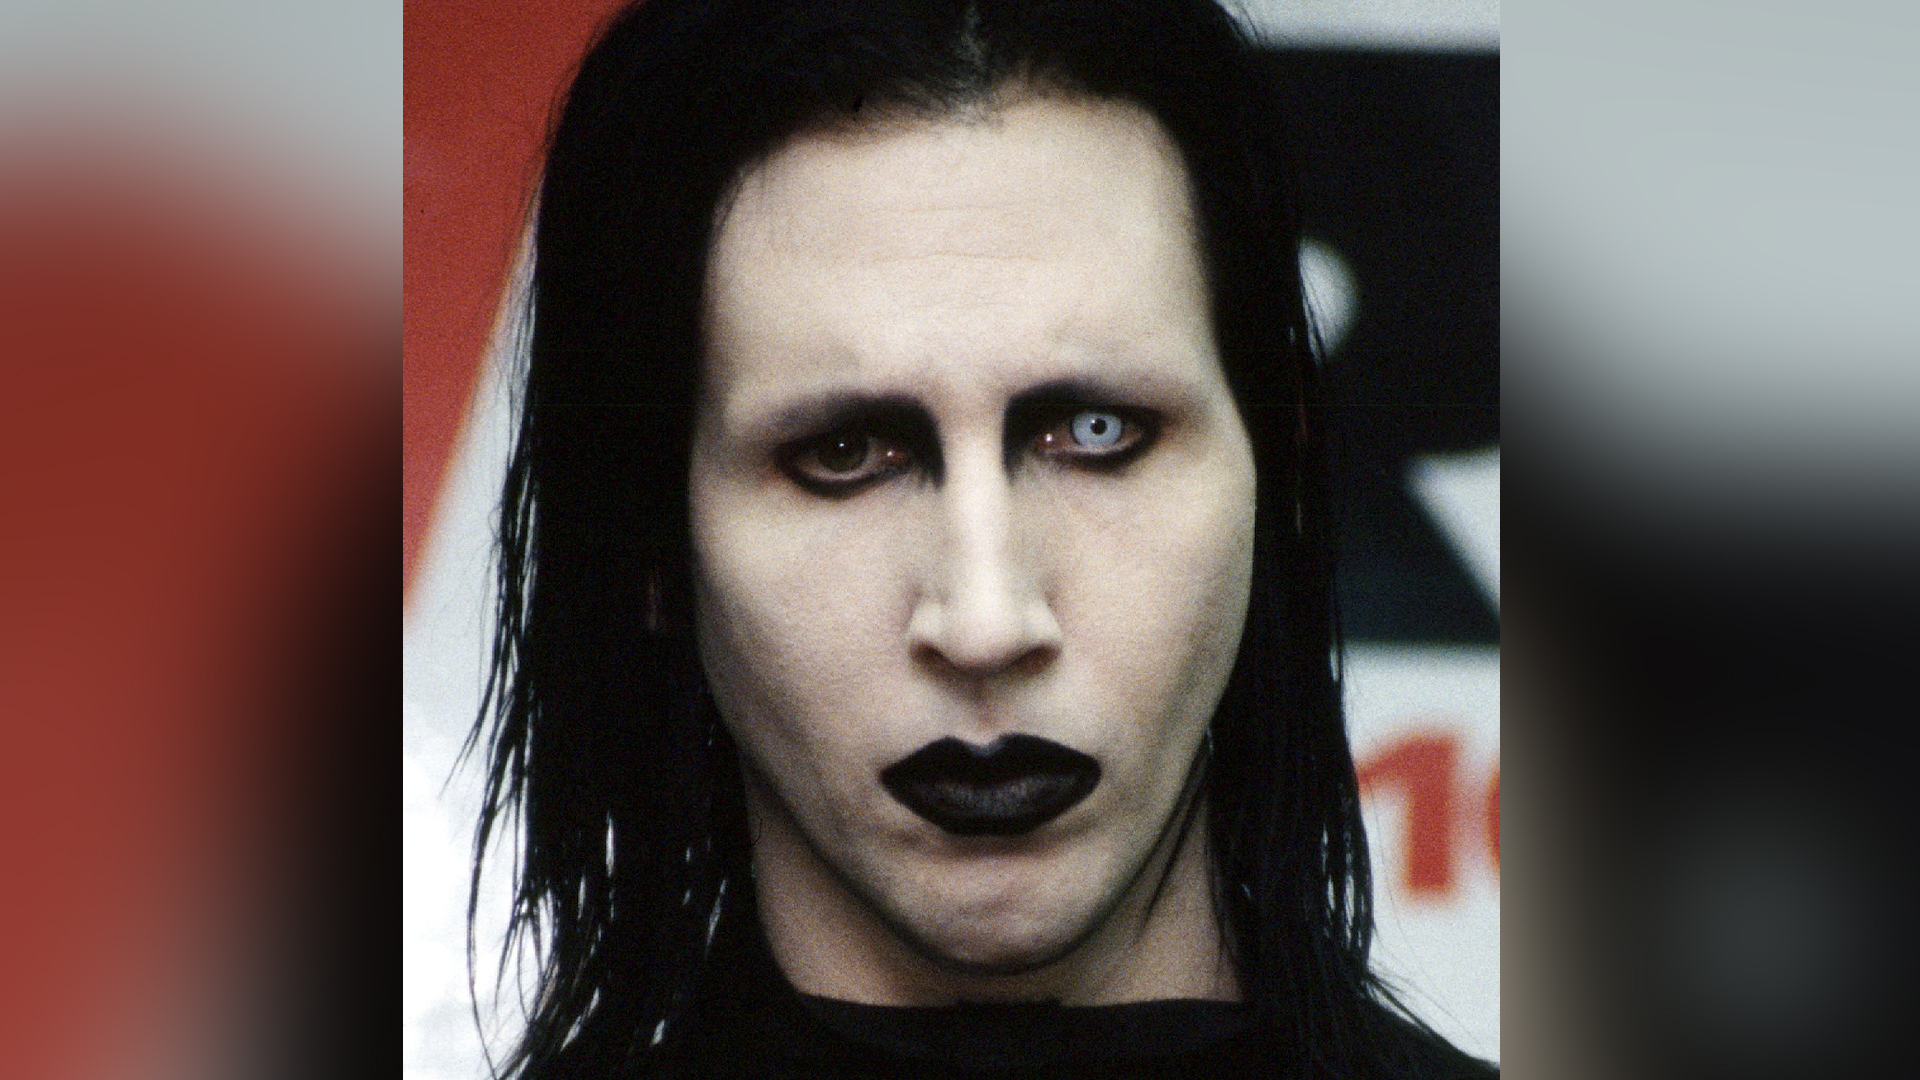 Marilyn Manson Sued Again For Sexual Assault, Team Denies All Allegations